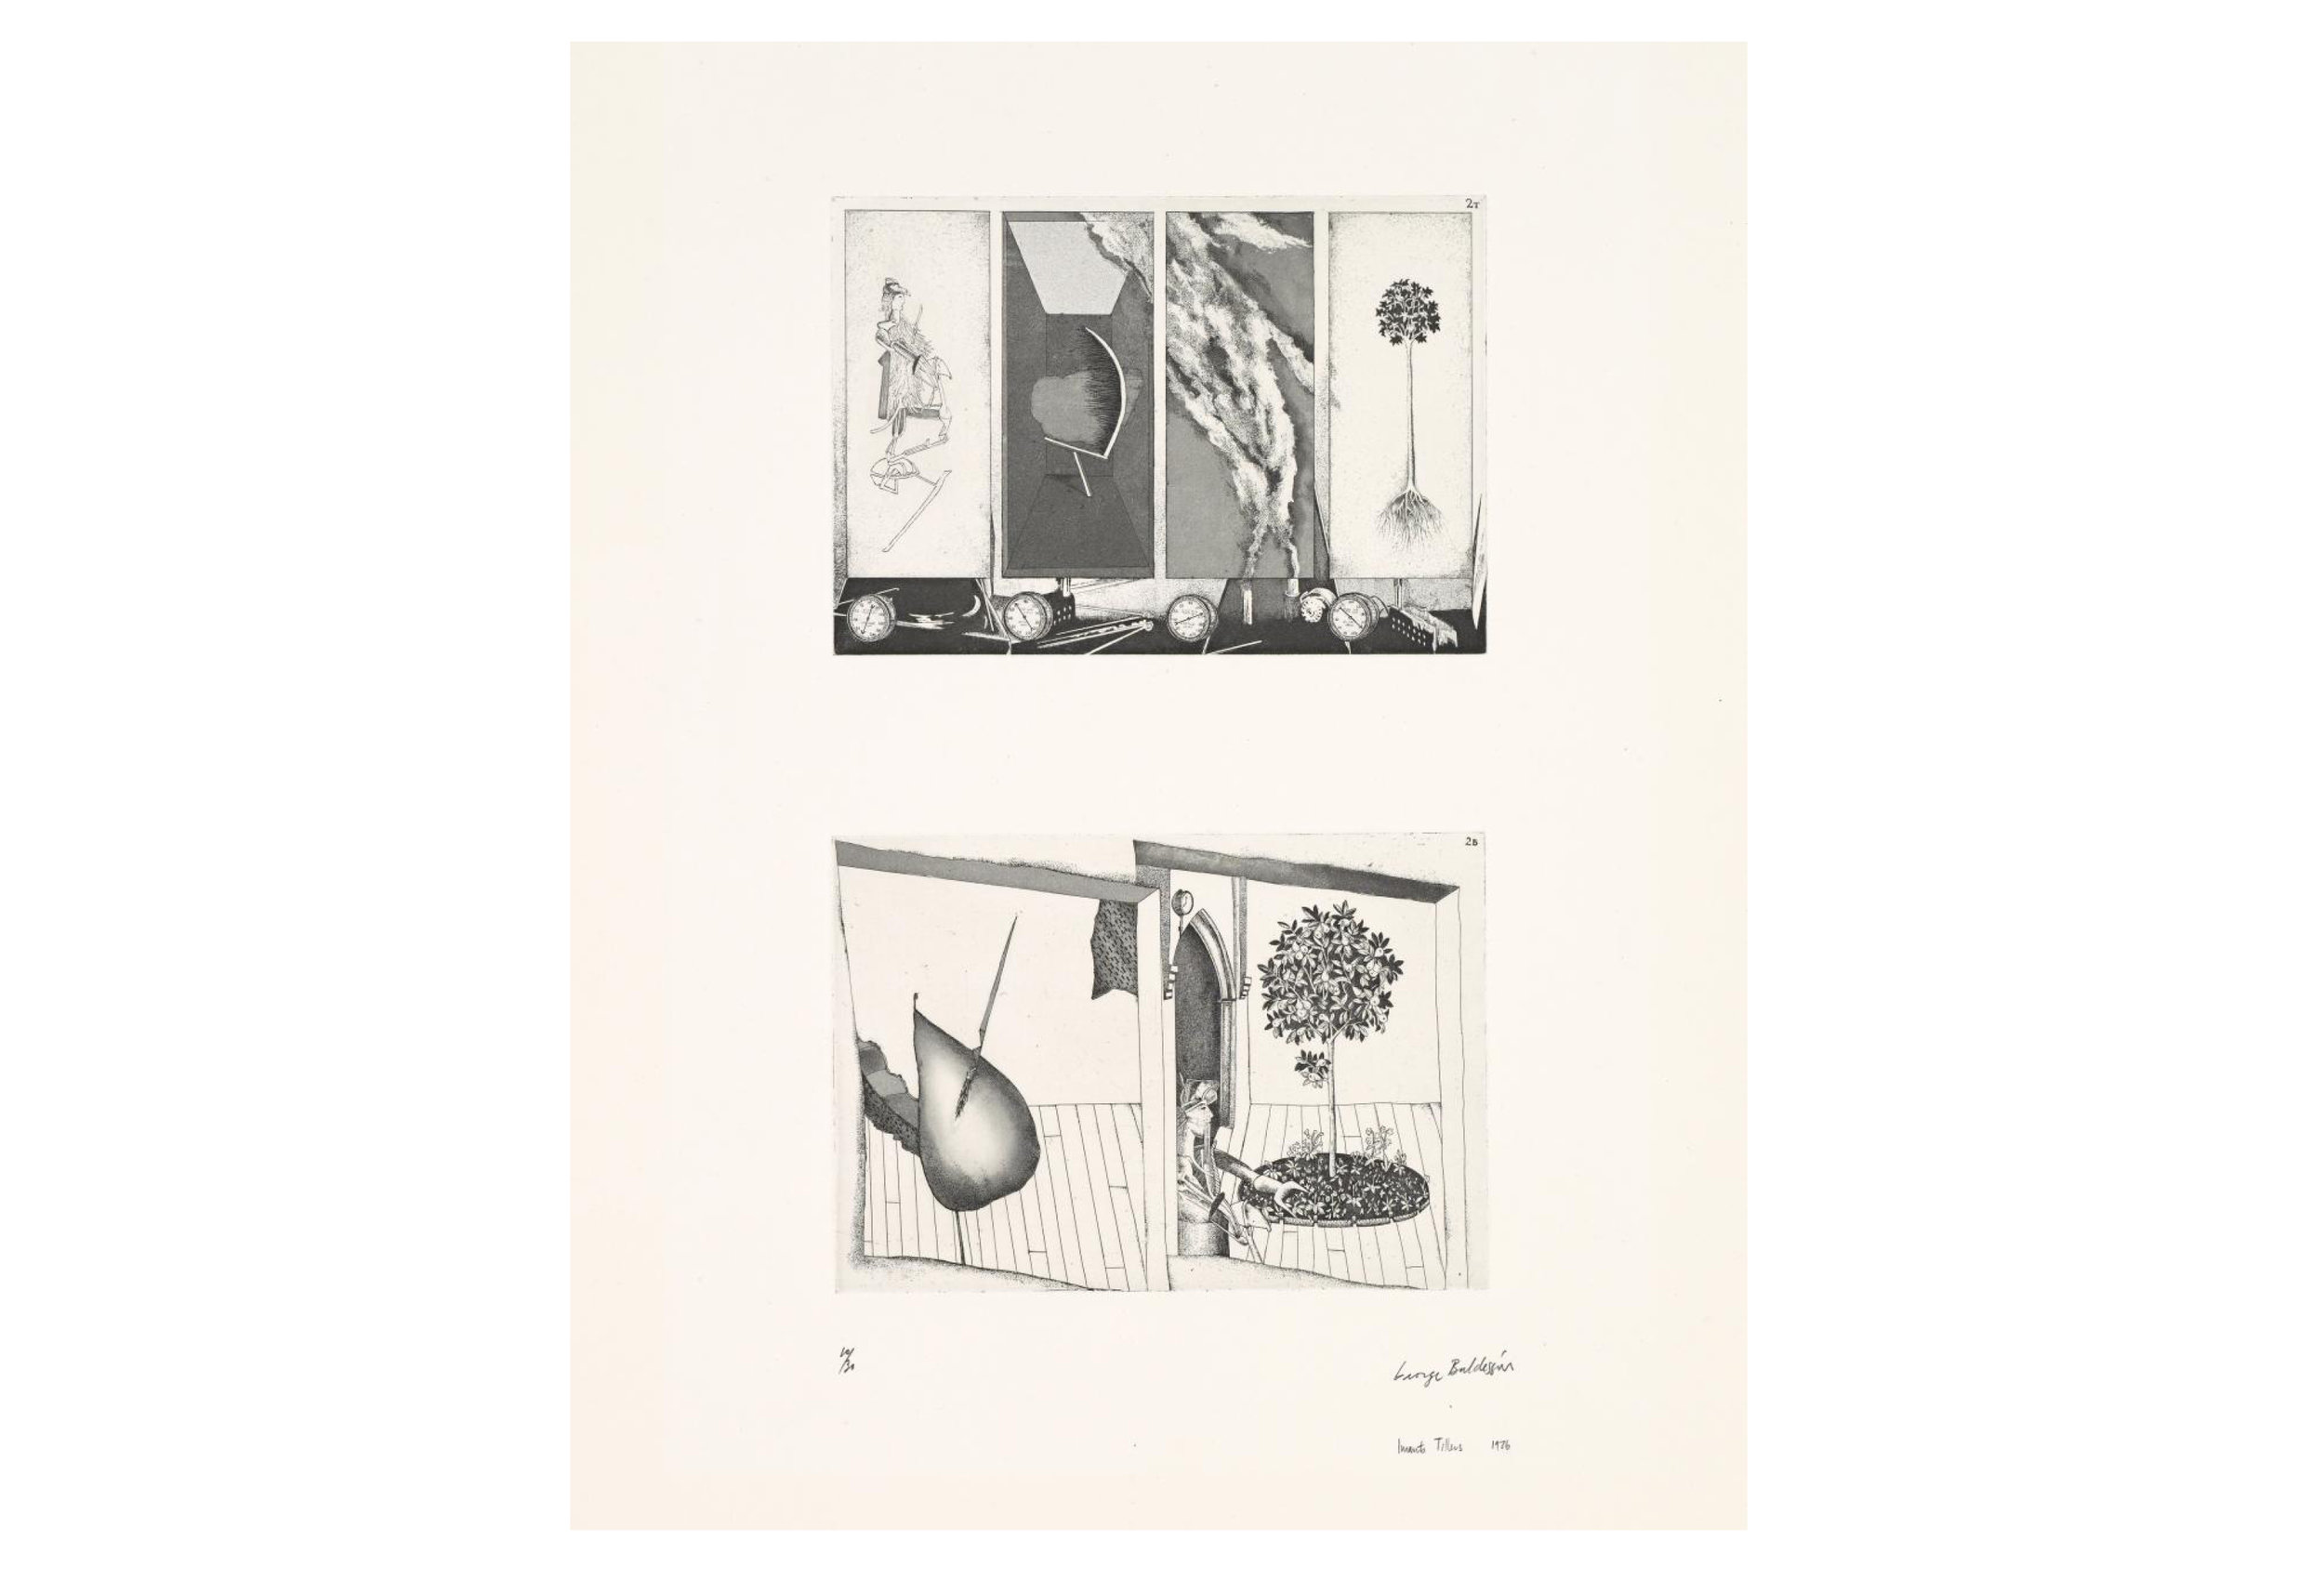 Imants Tillers and George Baldessin   According to Des Esseintes 2 , 1976  from the suite According to Des Esseintes etching and aquatint on arches paper printed by Pascal Giraudon in Nice, France 18.0 × 25.6 cm (plate) (top) 17.8 × 25.6 cm (plate) (bottom) 42.6 × 25.6 cm (comp.) 64.8 × 50.8 cm (sheet) Collections: National Gallery of Victoria, Melbourne; Art Gallery of New South Wales; National Gallery, Wellington, Queensland Art Gallery, Brisbane, National Gallery of Australia, Canberra